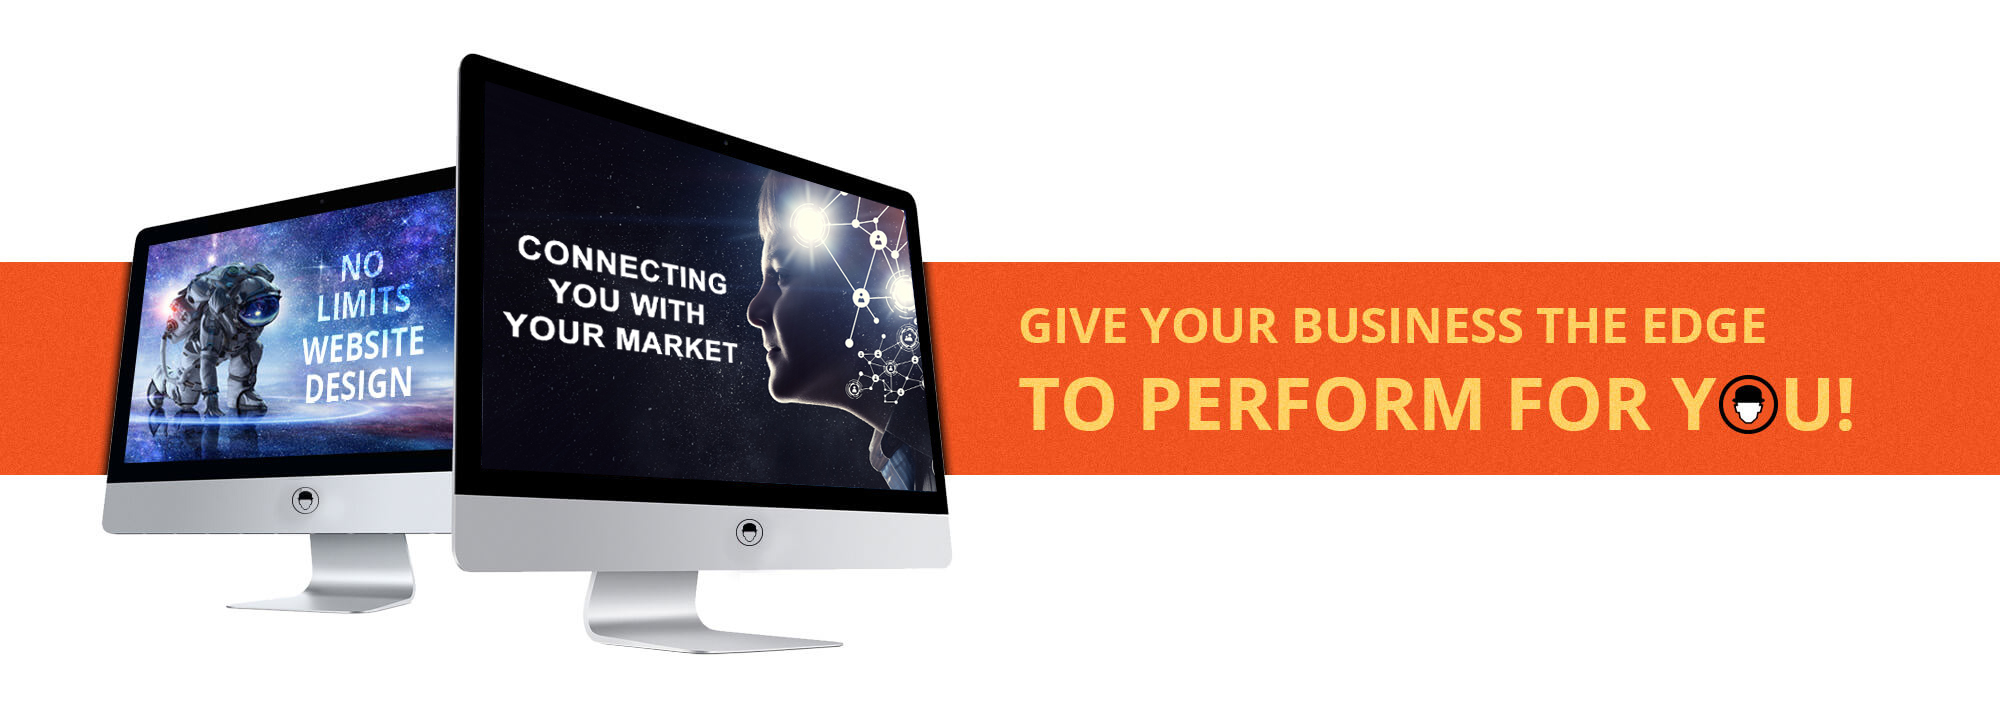 Give Your Business the Edge to Perform | Website Design By Agent Orange Design